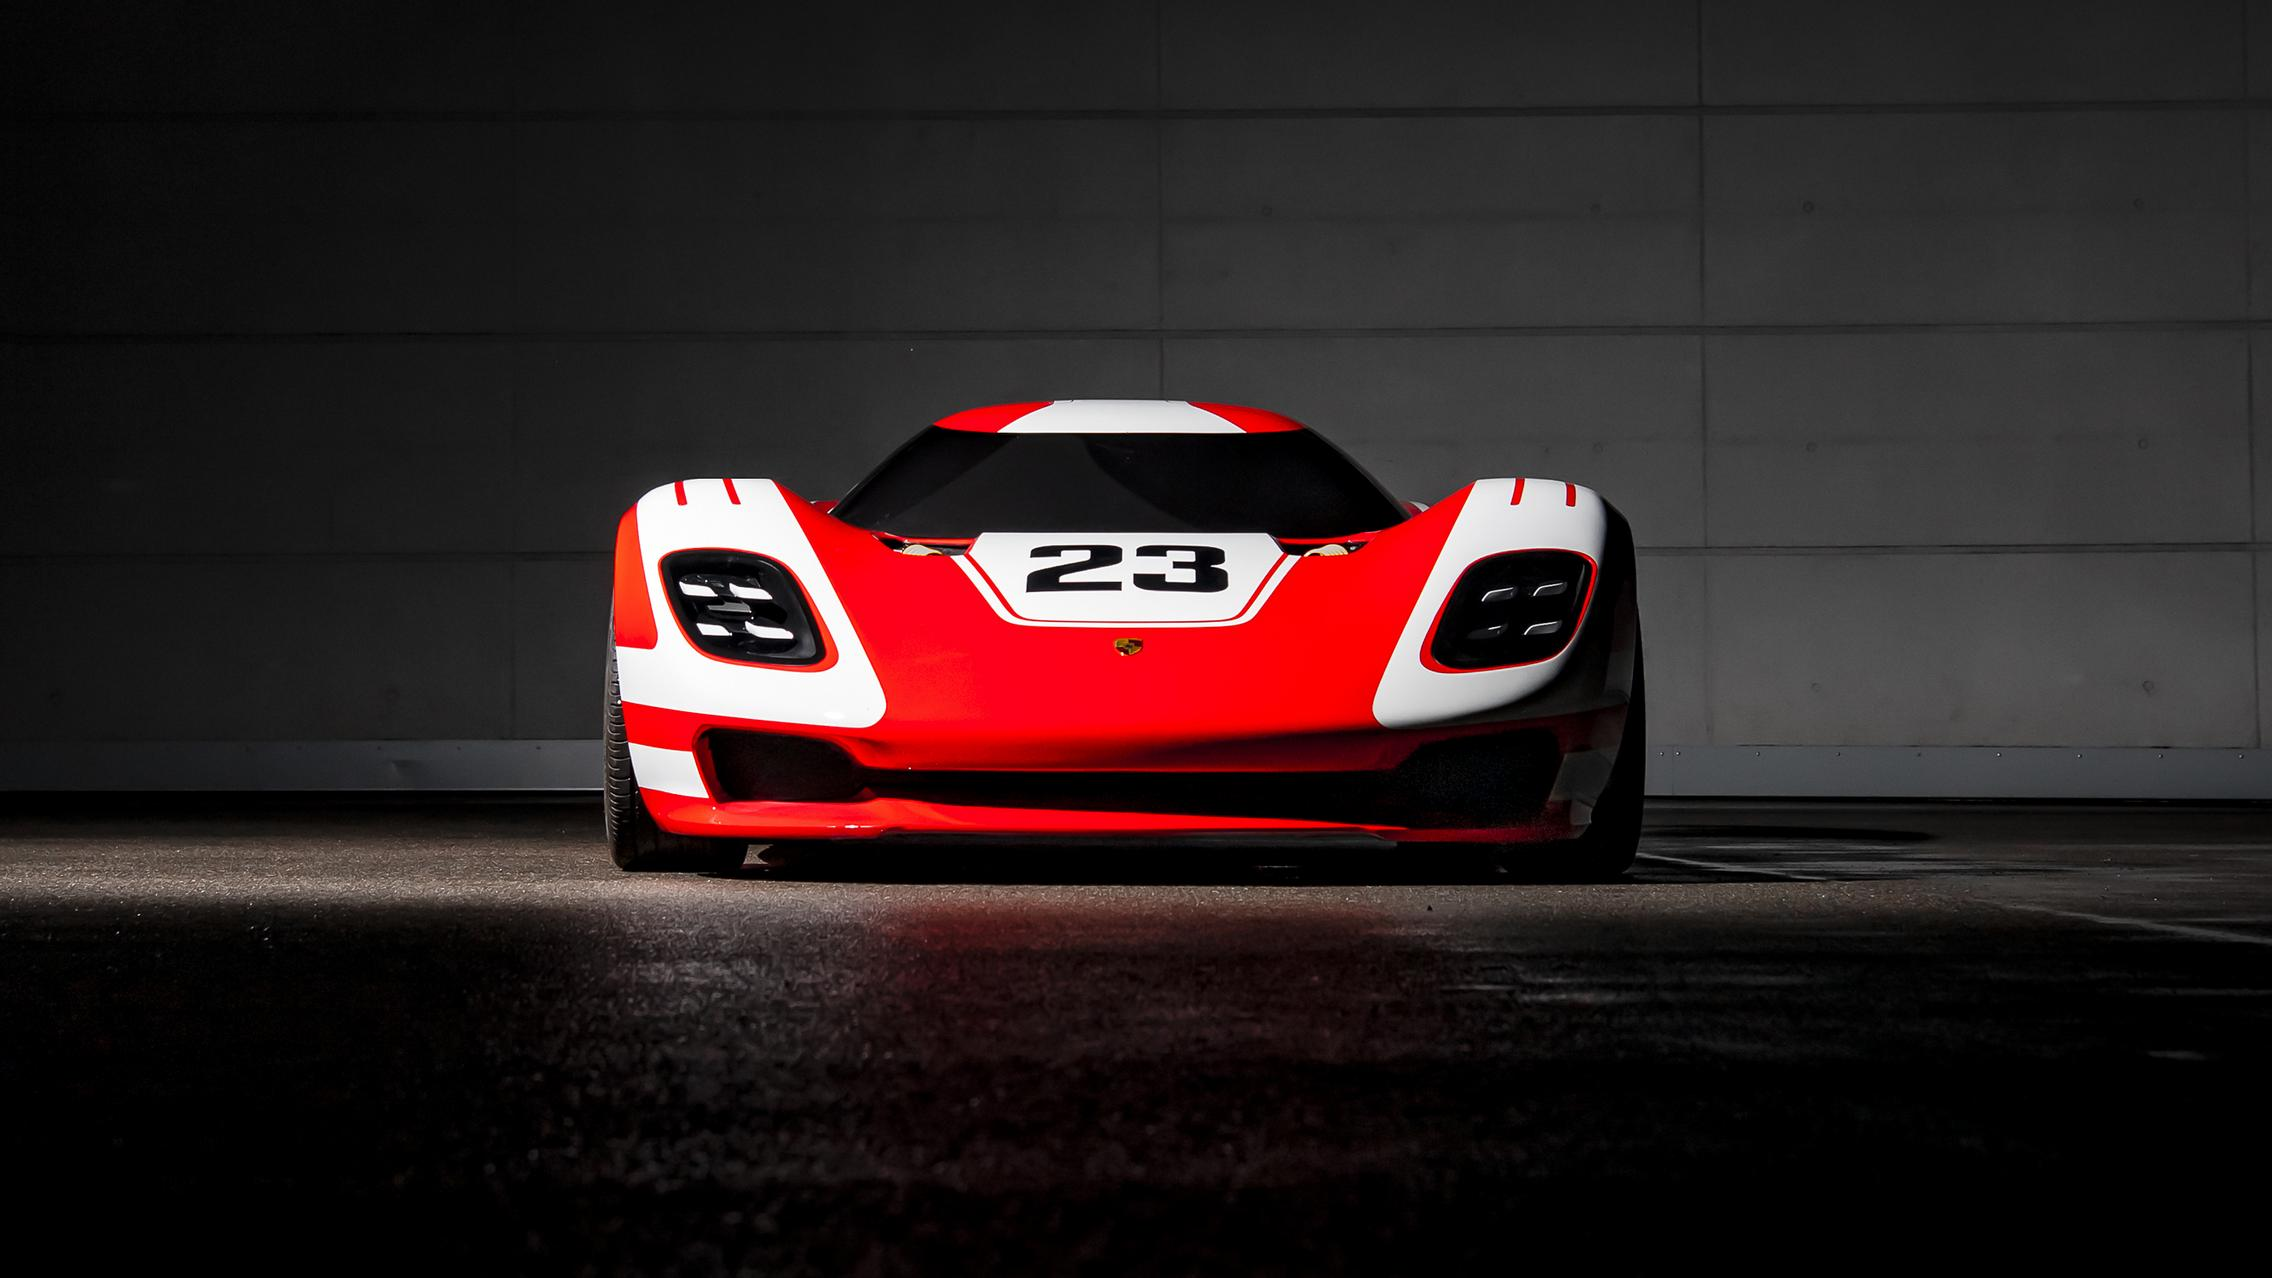 Porsche 917 Living Legend front